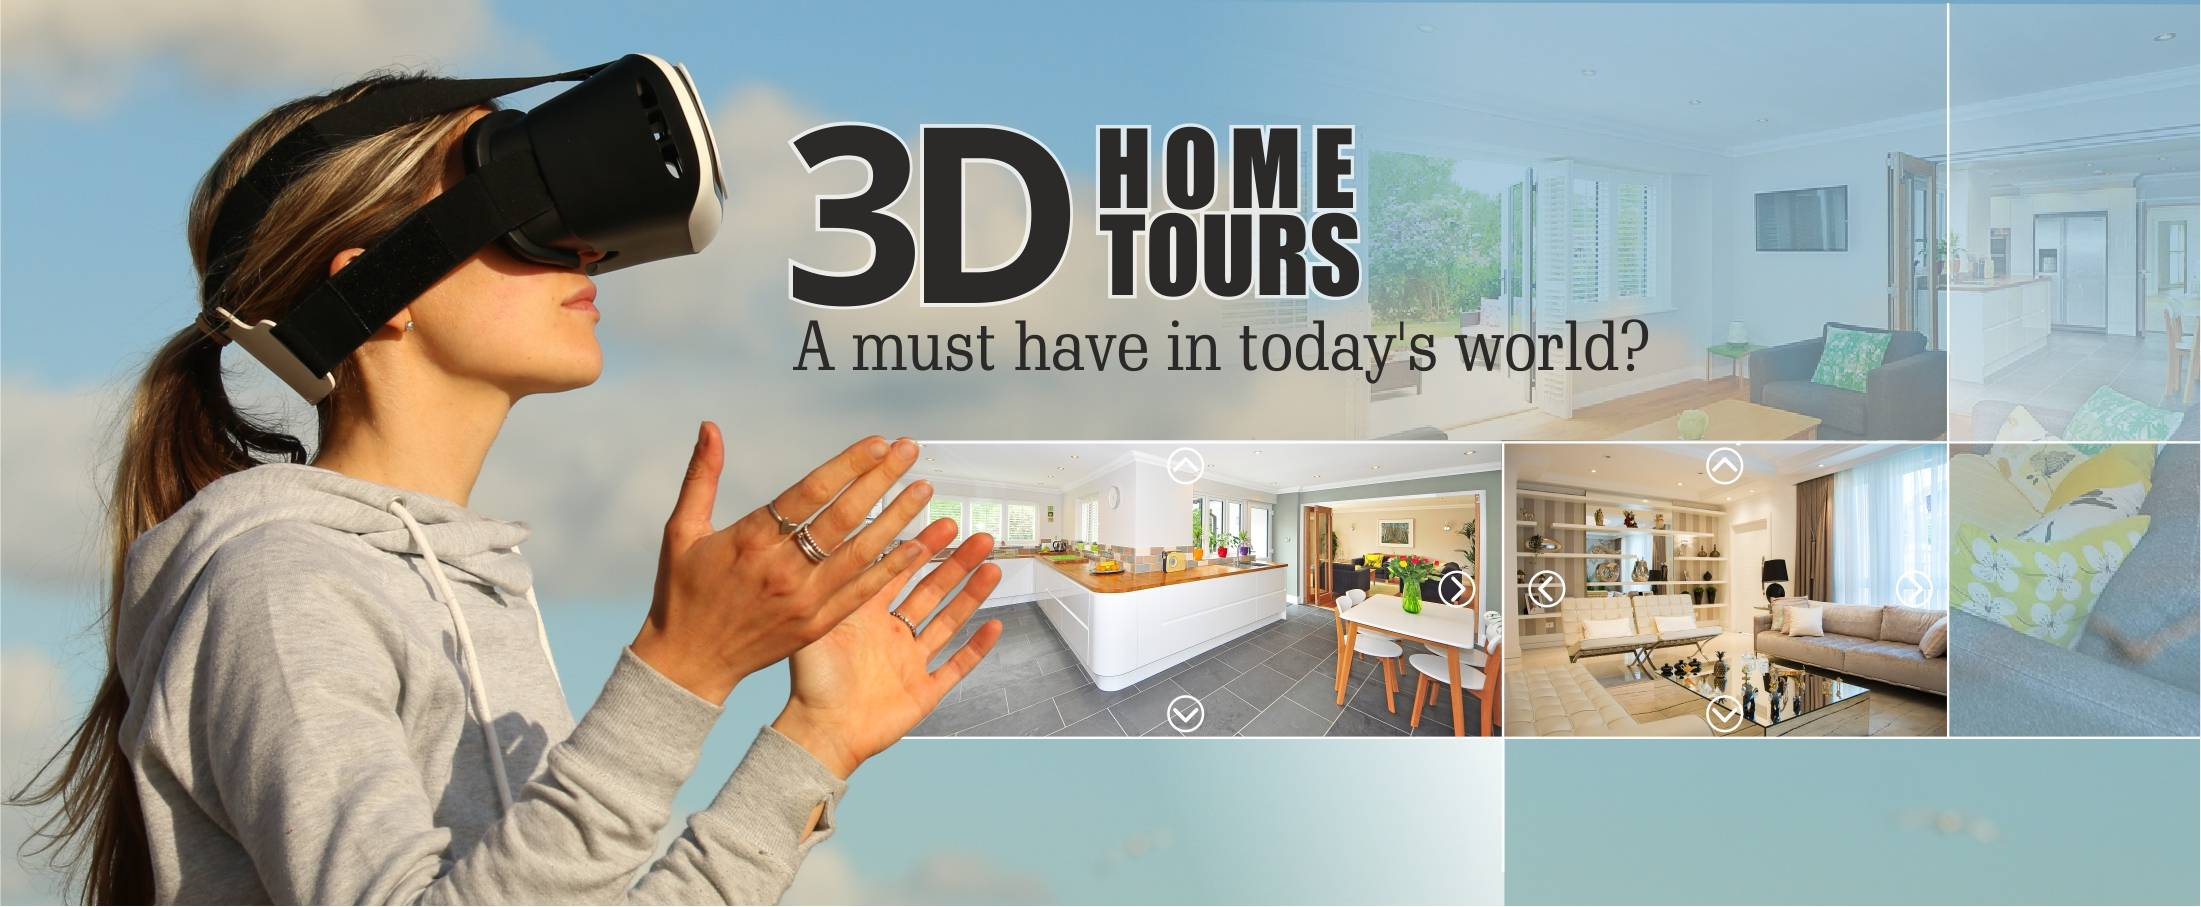 3D Home Tours - A must have in today's world?